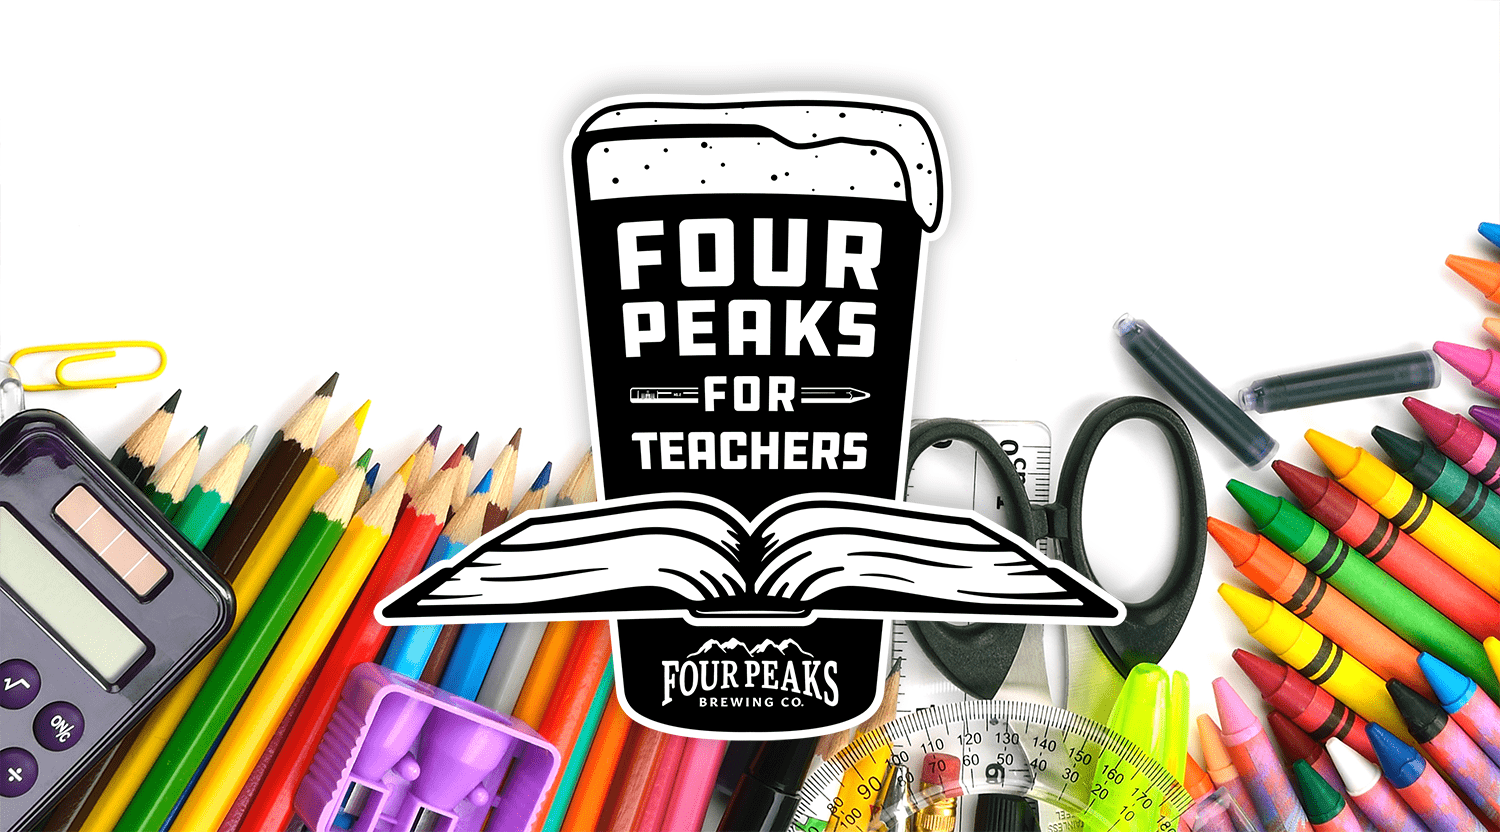 Four Peaks For Teachers 2020 - wide